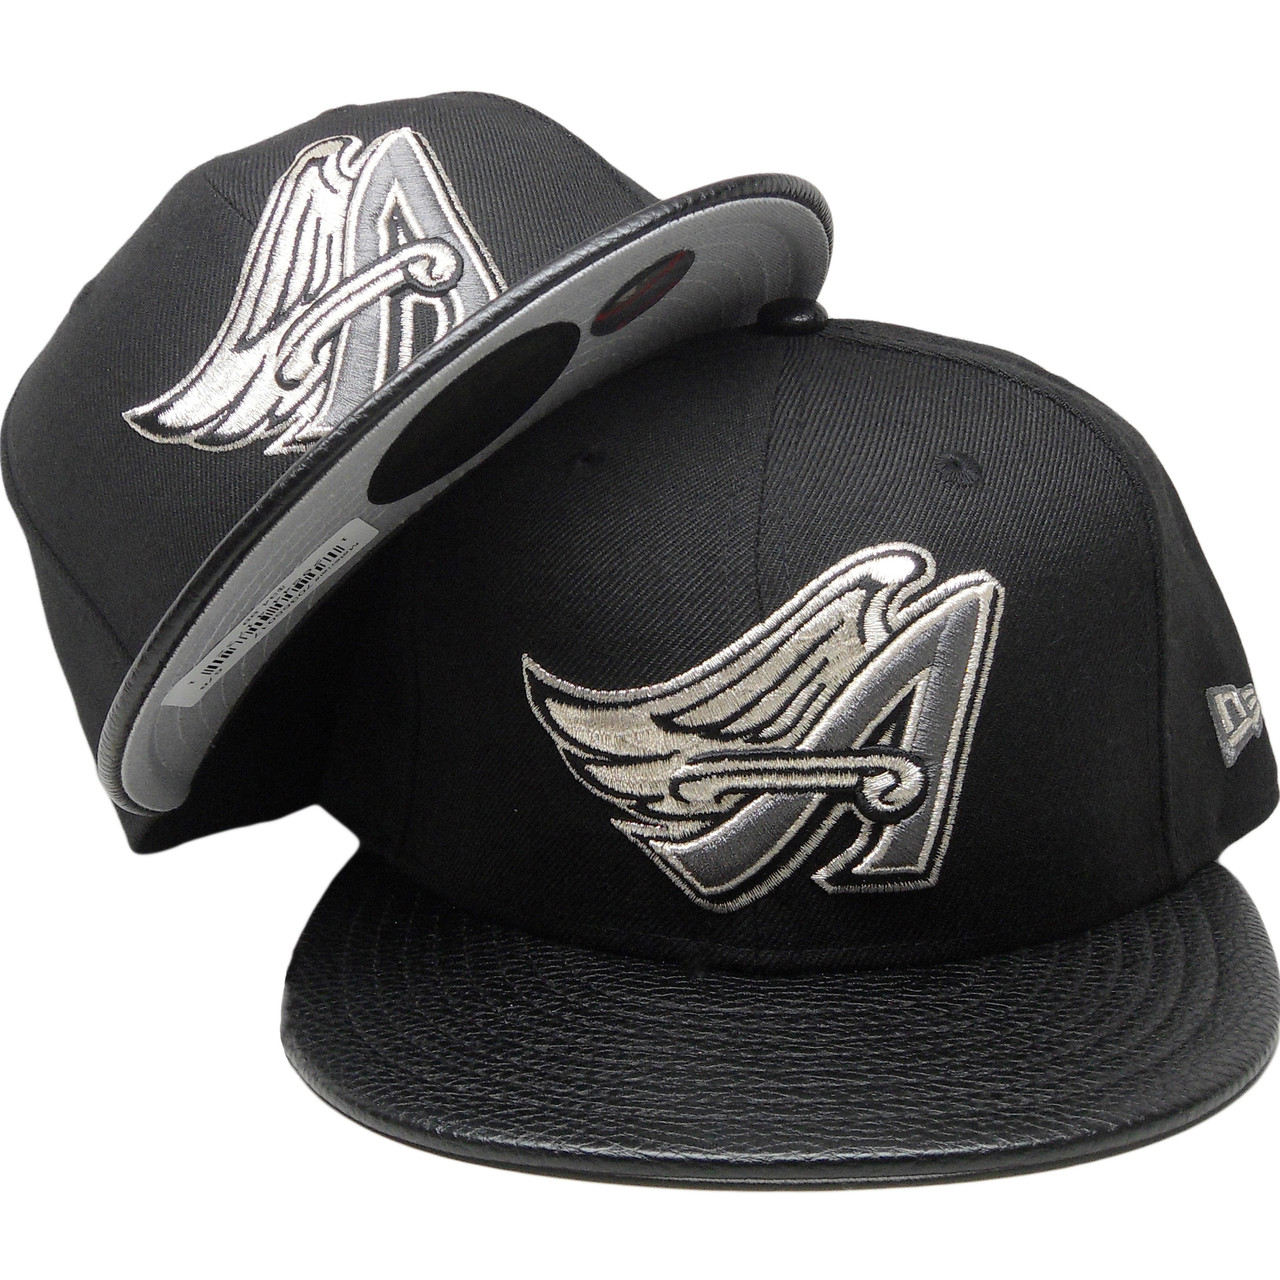 9c1d7bb5d8397 Anaheim Angels New Era Custom 59Fifty Fitted Hat - Black, Gray, Silver -  ECapsUnlimited.com